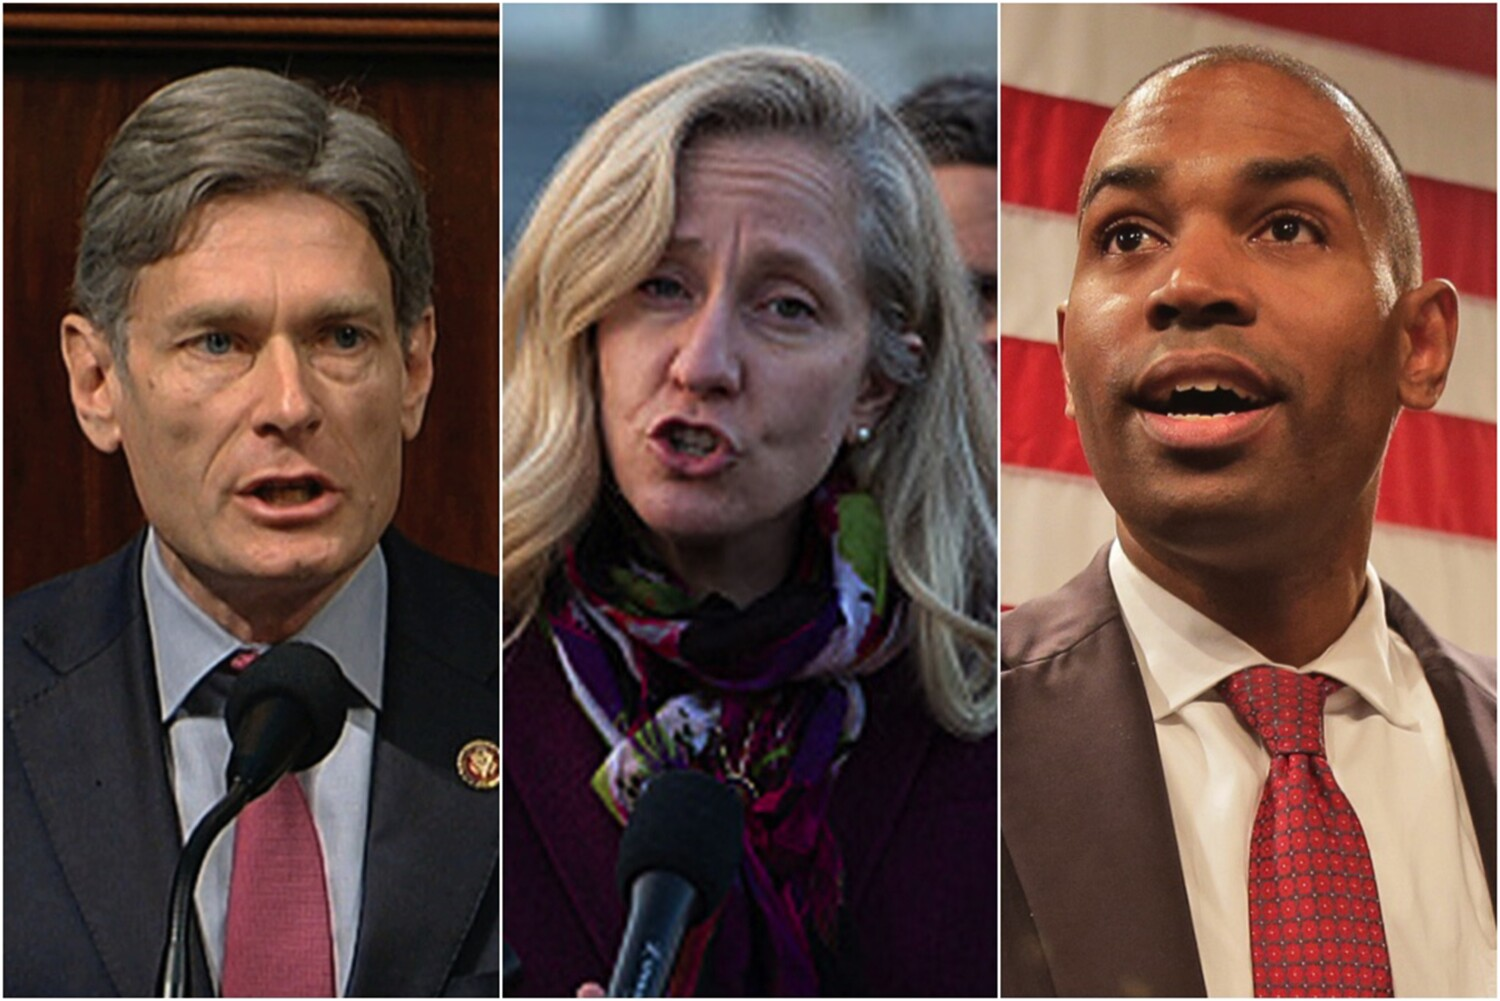 Democrats brace for 2022 elections with 'little margin for error'